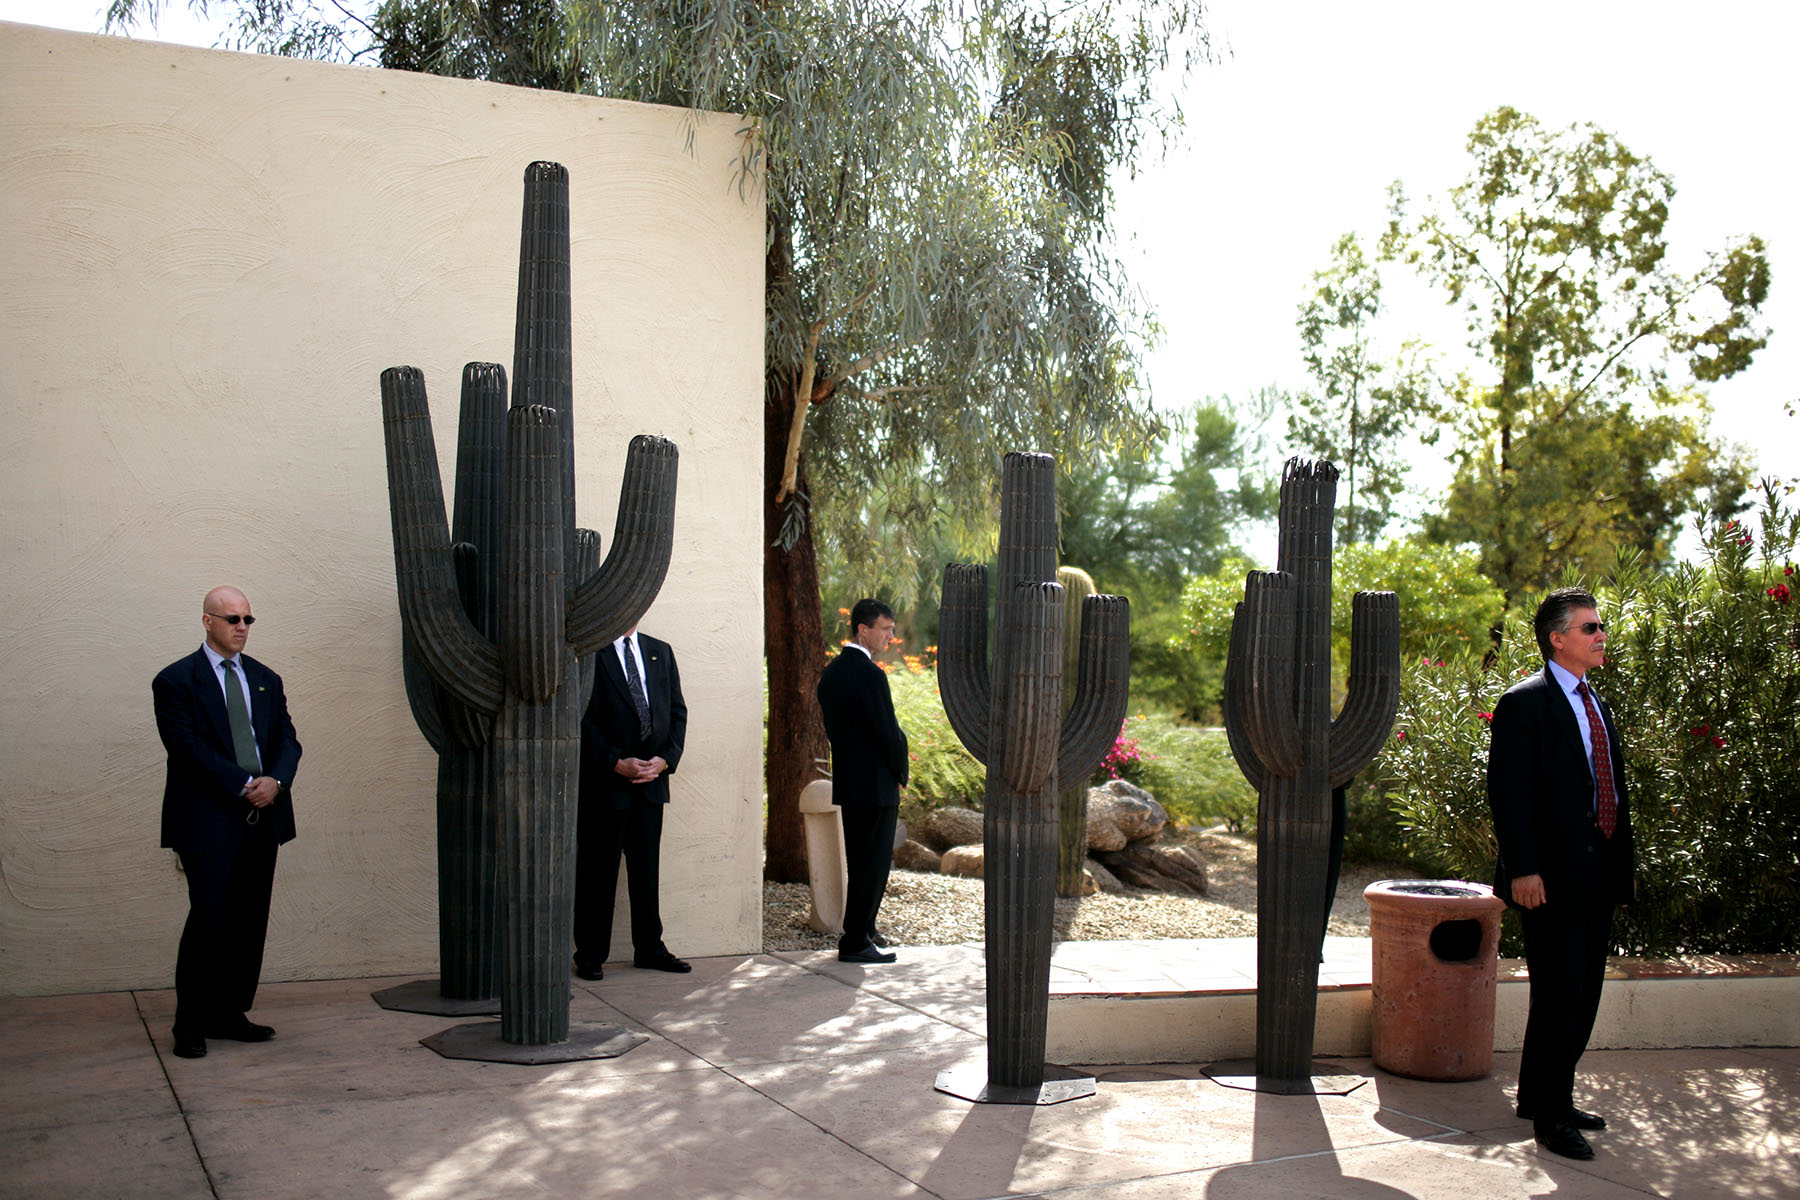 Secret Service agents watch as President George W. Bush attends a signing ceremony for the 2007 Department of Homeland Security Appropriations Act, in Scottsdale, Arizona, October 4, 2006.Photo by Brooks Kraft/Corbis